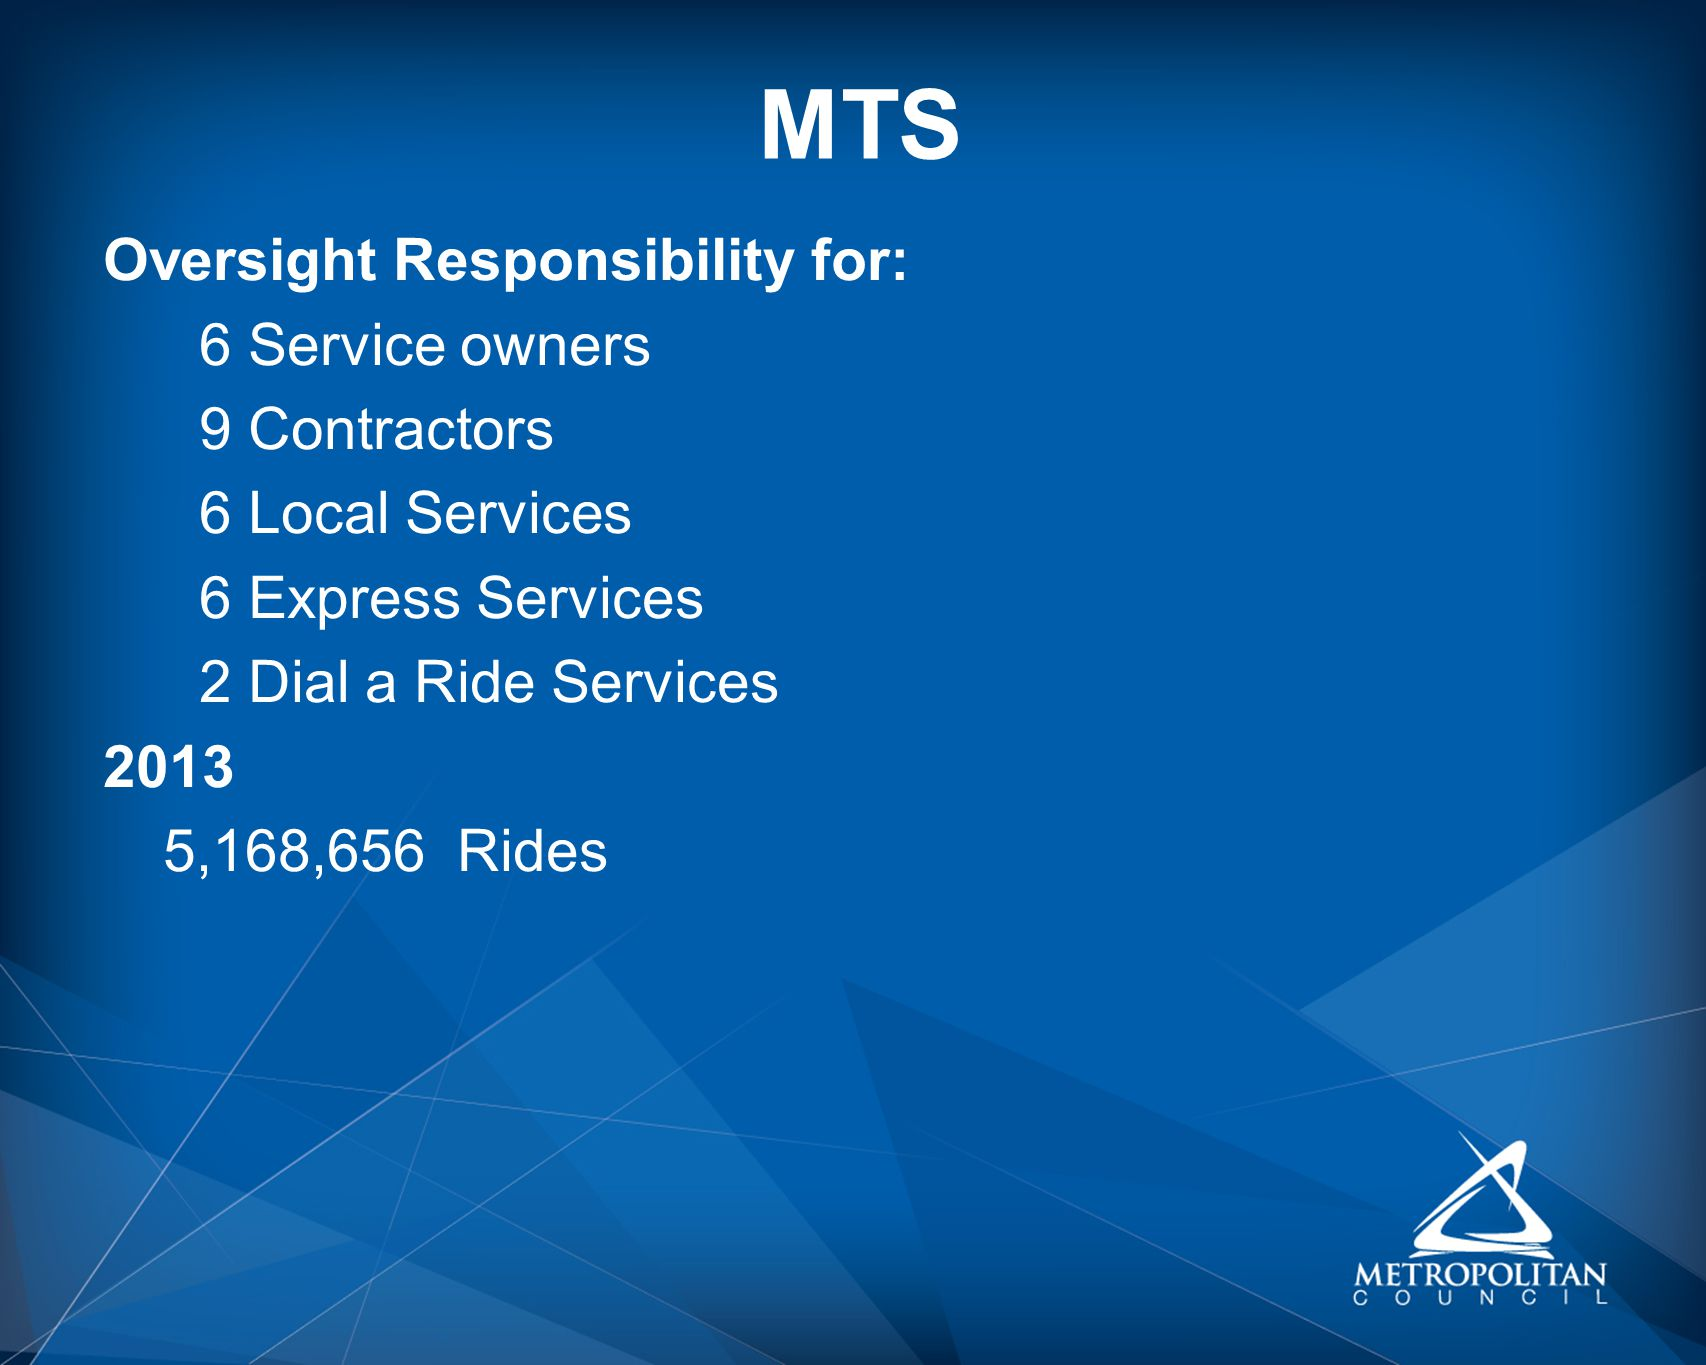 MTS Oversight Responsibility for: 6 Service owners 9 Contractors 6 Local Services 6 Express Services 2 Dial a Ride Services 2013 5,168,656 Rides